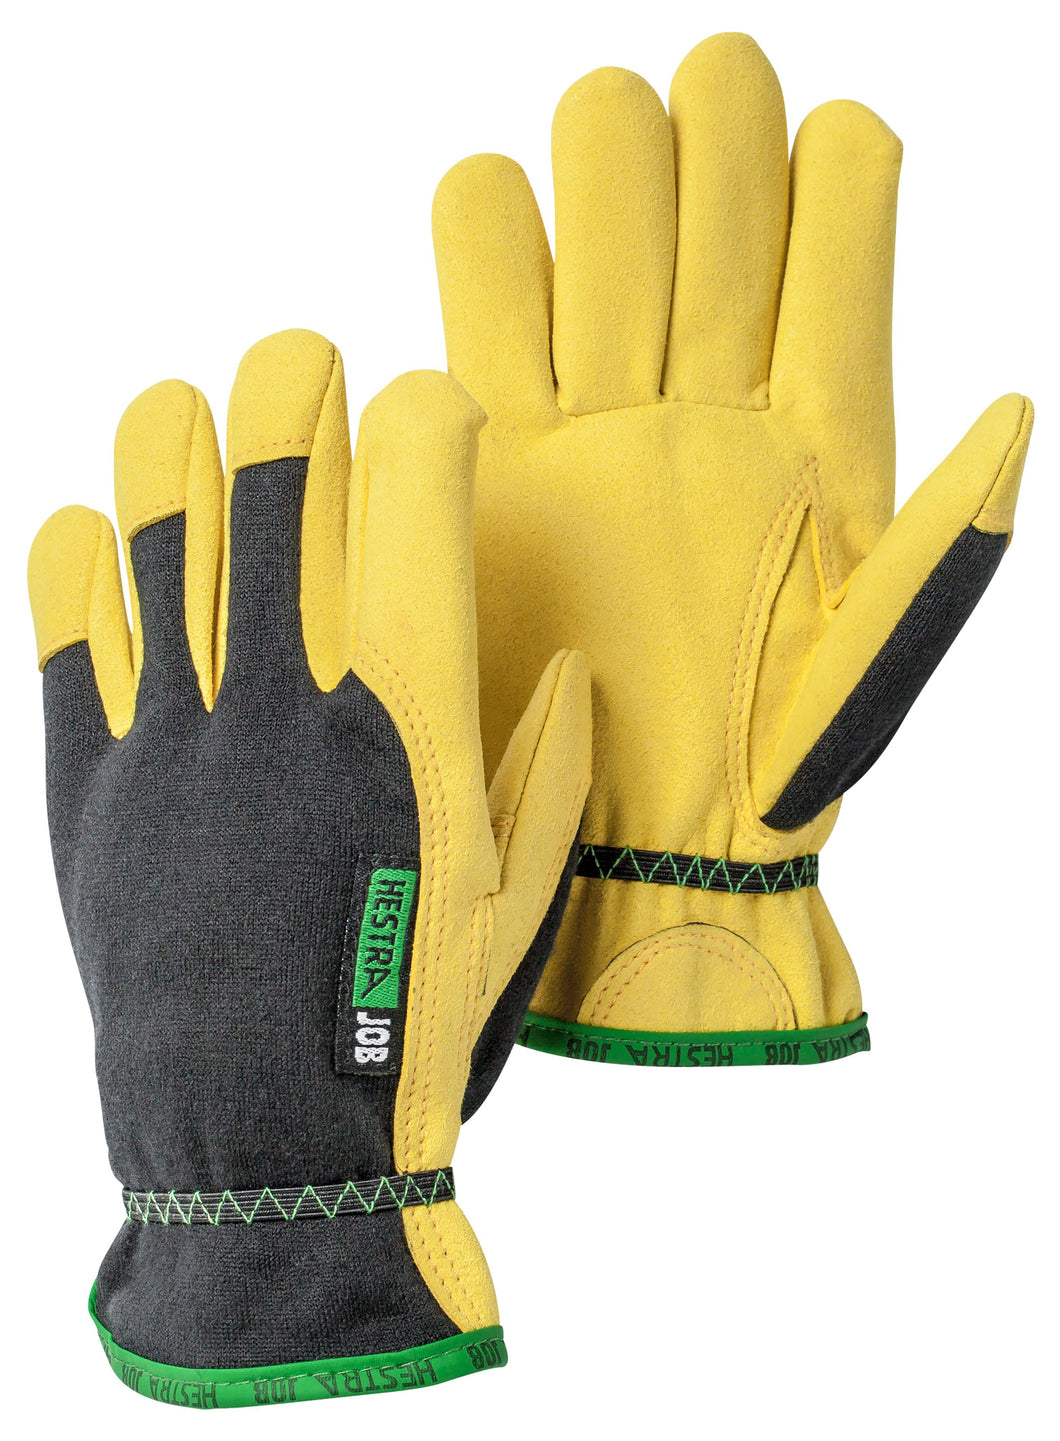 Kobolt Kid's Gloves